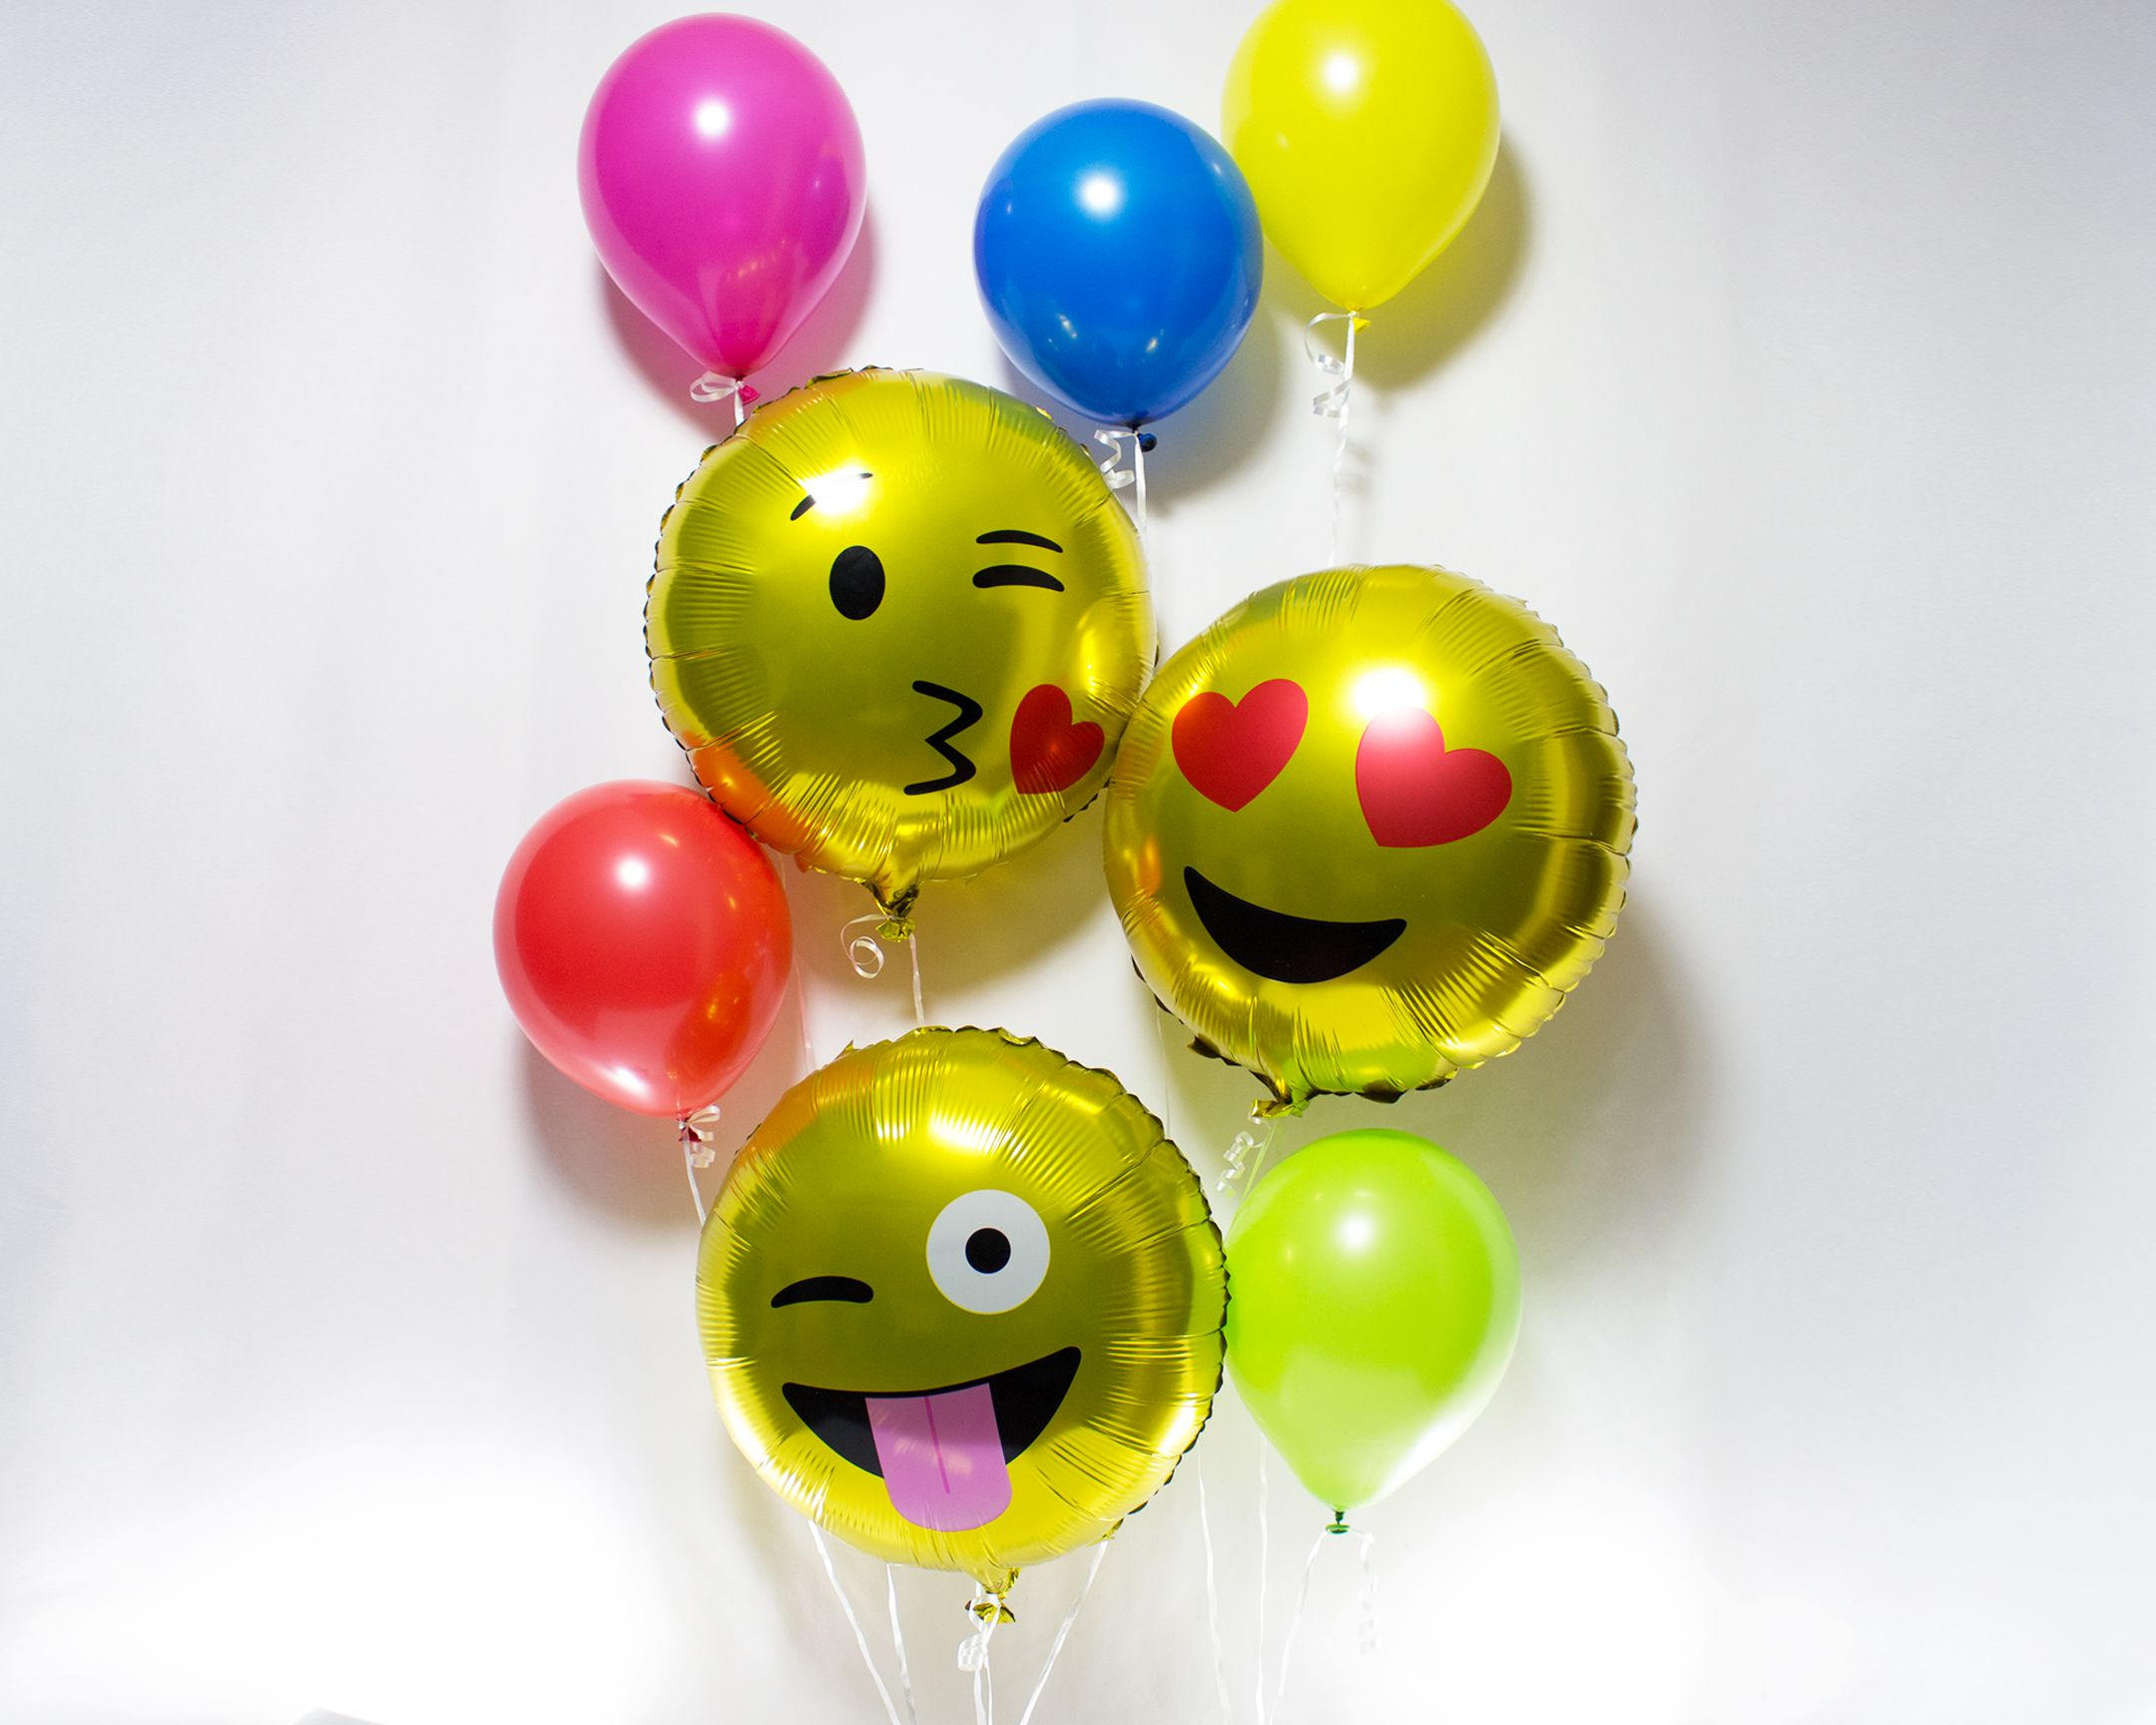 Emoji Party Balloons Birthday Decorations Theme Aluminium Foil Balloon Giant 600004 On Storenvy